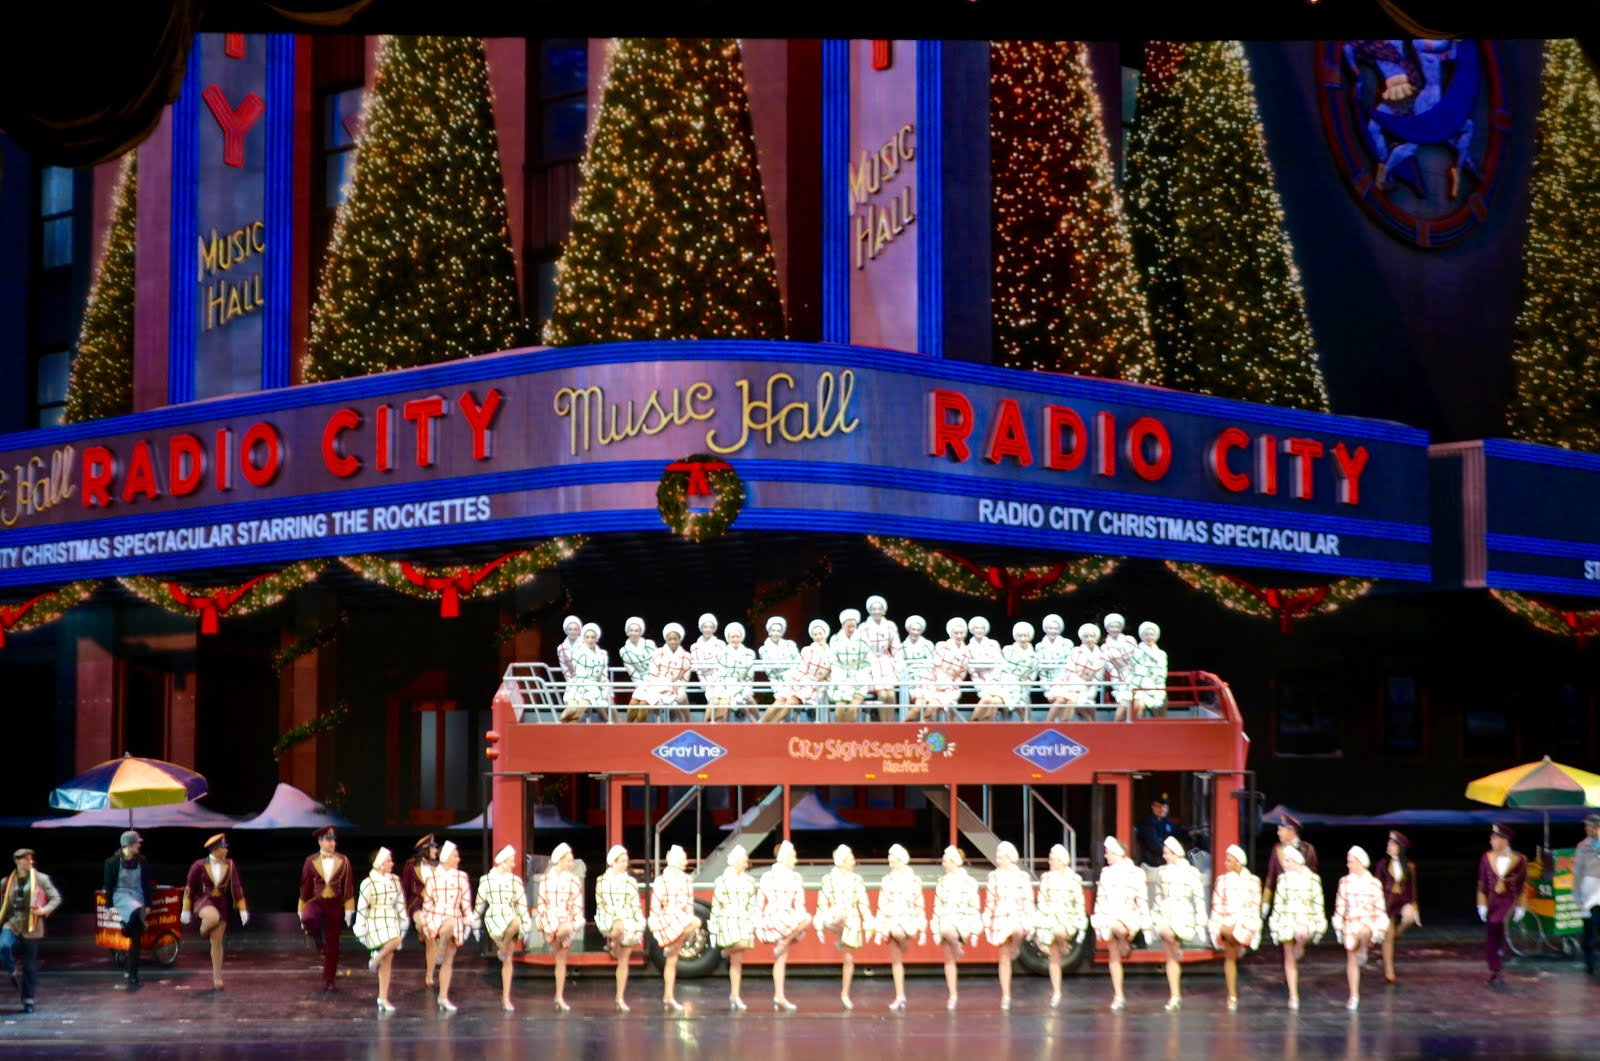 It's All About Purple: The Radio City Music Hall Christmas Spectacular